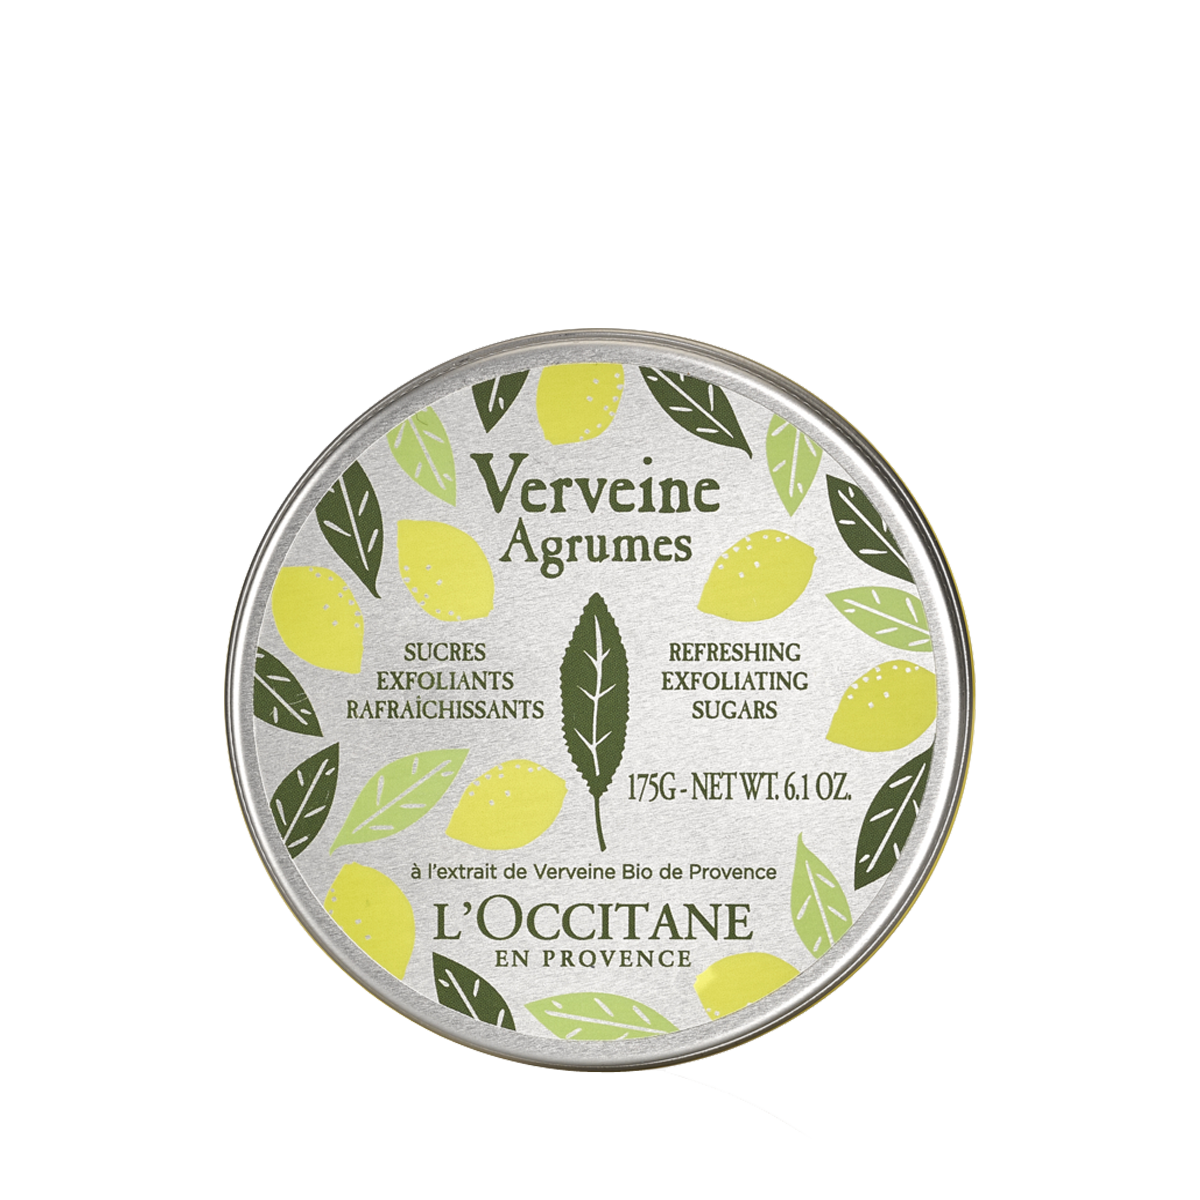 Citrus Verbena Refreshing Exfoliating Sugars Body Scrub L'Occitane